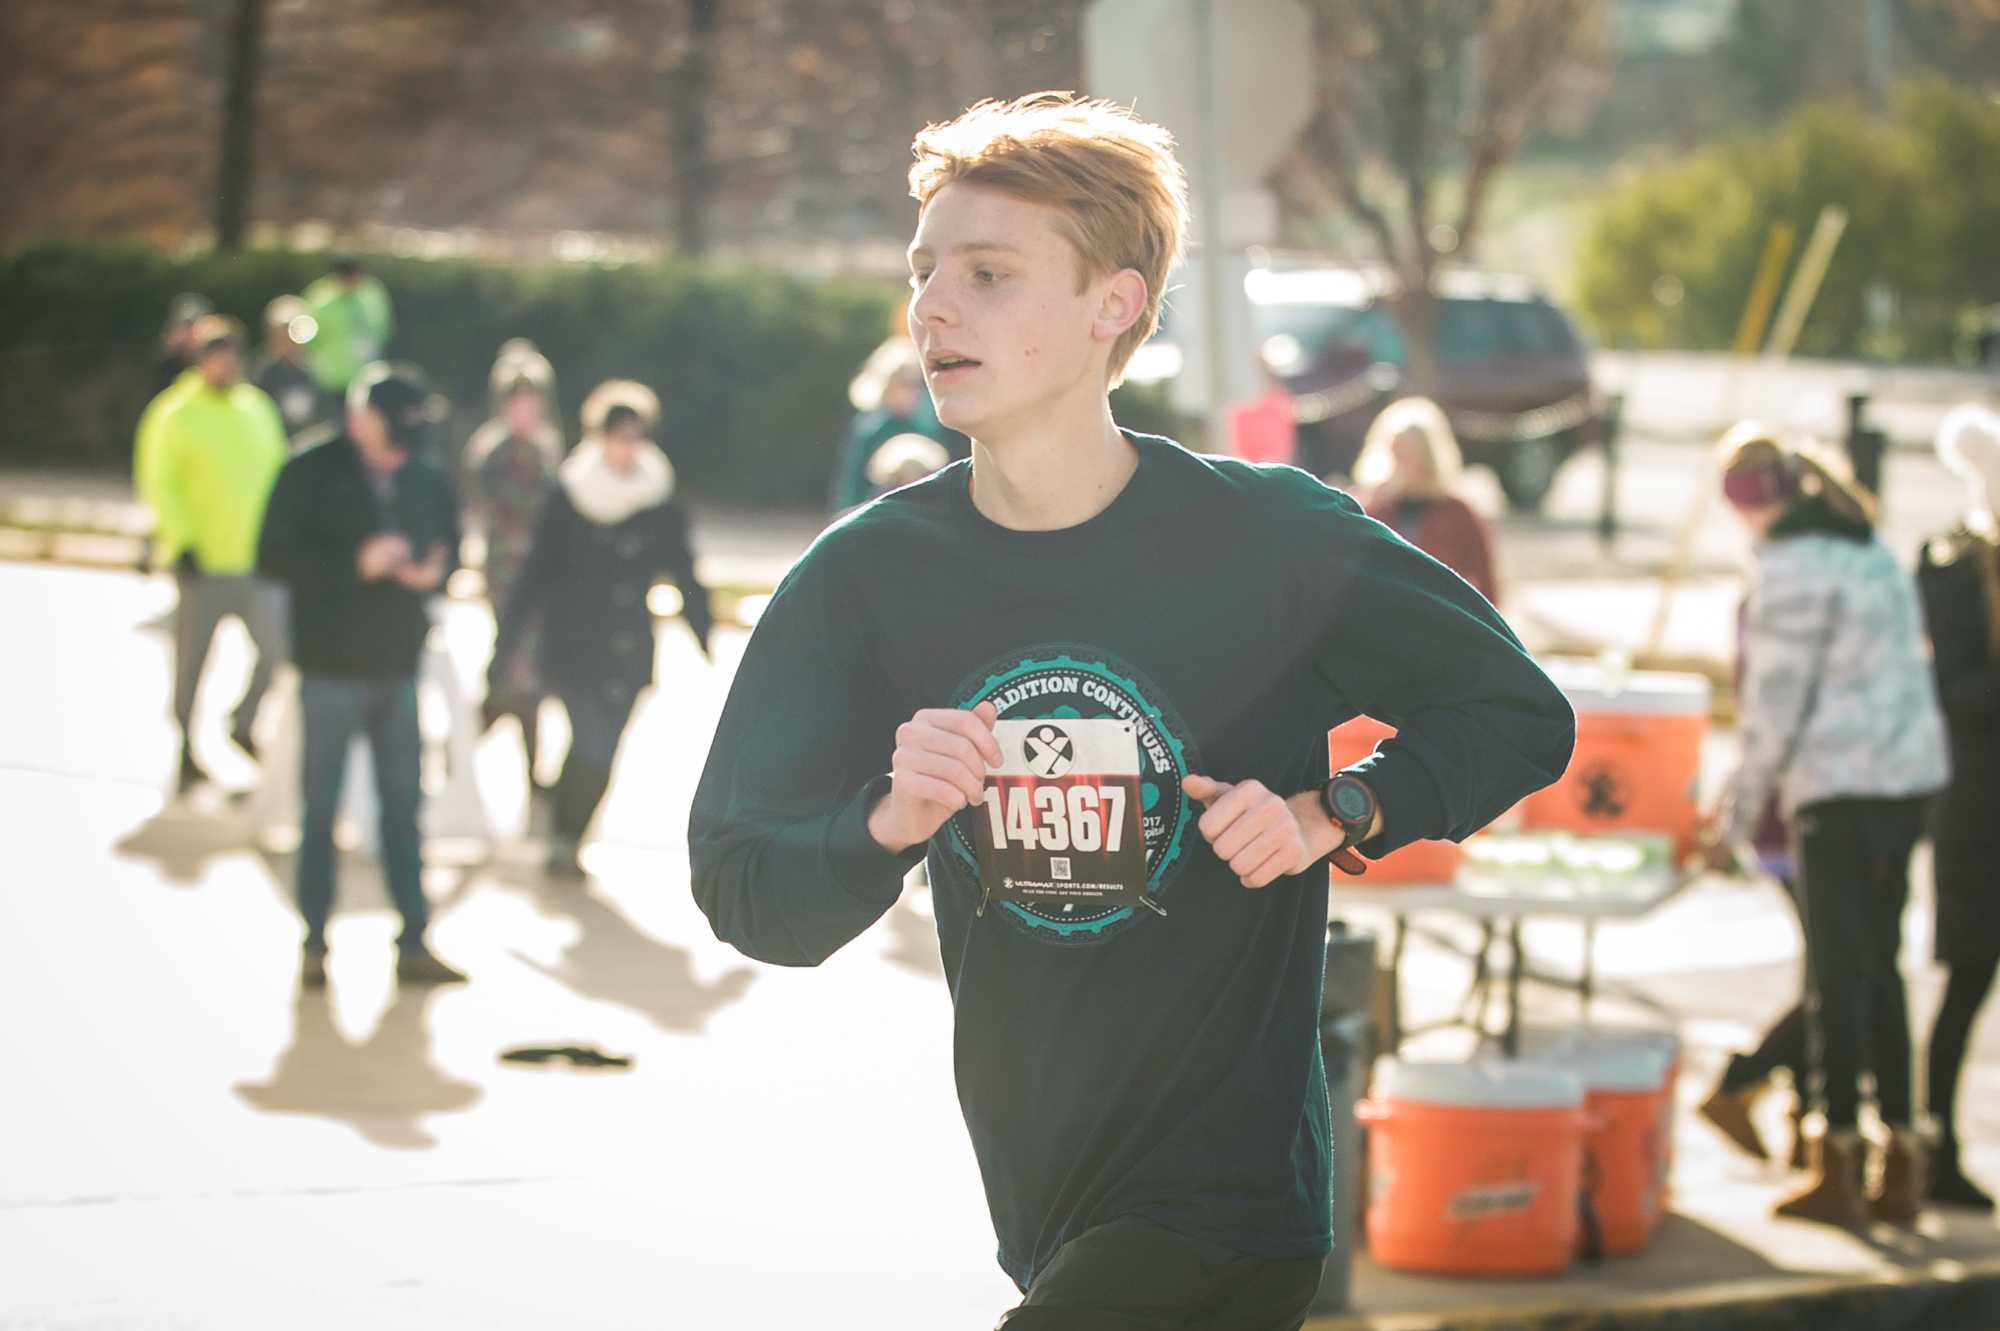 Senior Kevin Kiehne passes the aid station approximately two and half miles into the Turkey Trax Run on Nov. 23. Kiehne finished tenth overall out of the 1,282 participants this year. Photo by Yousuf El-Jayyousi